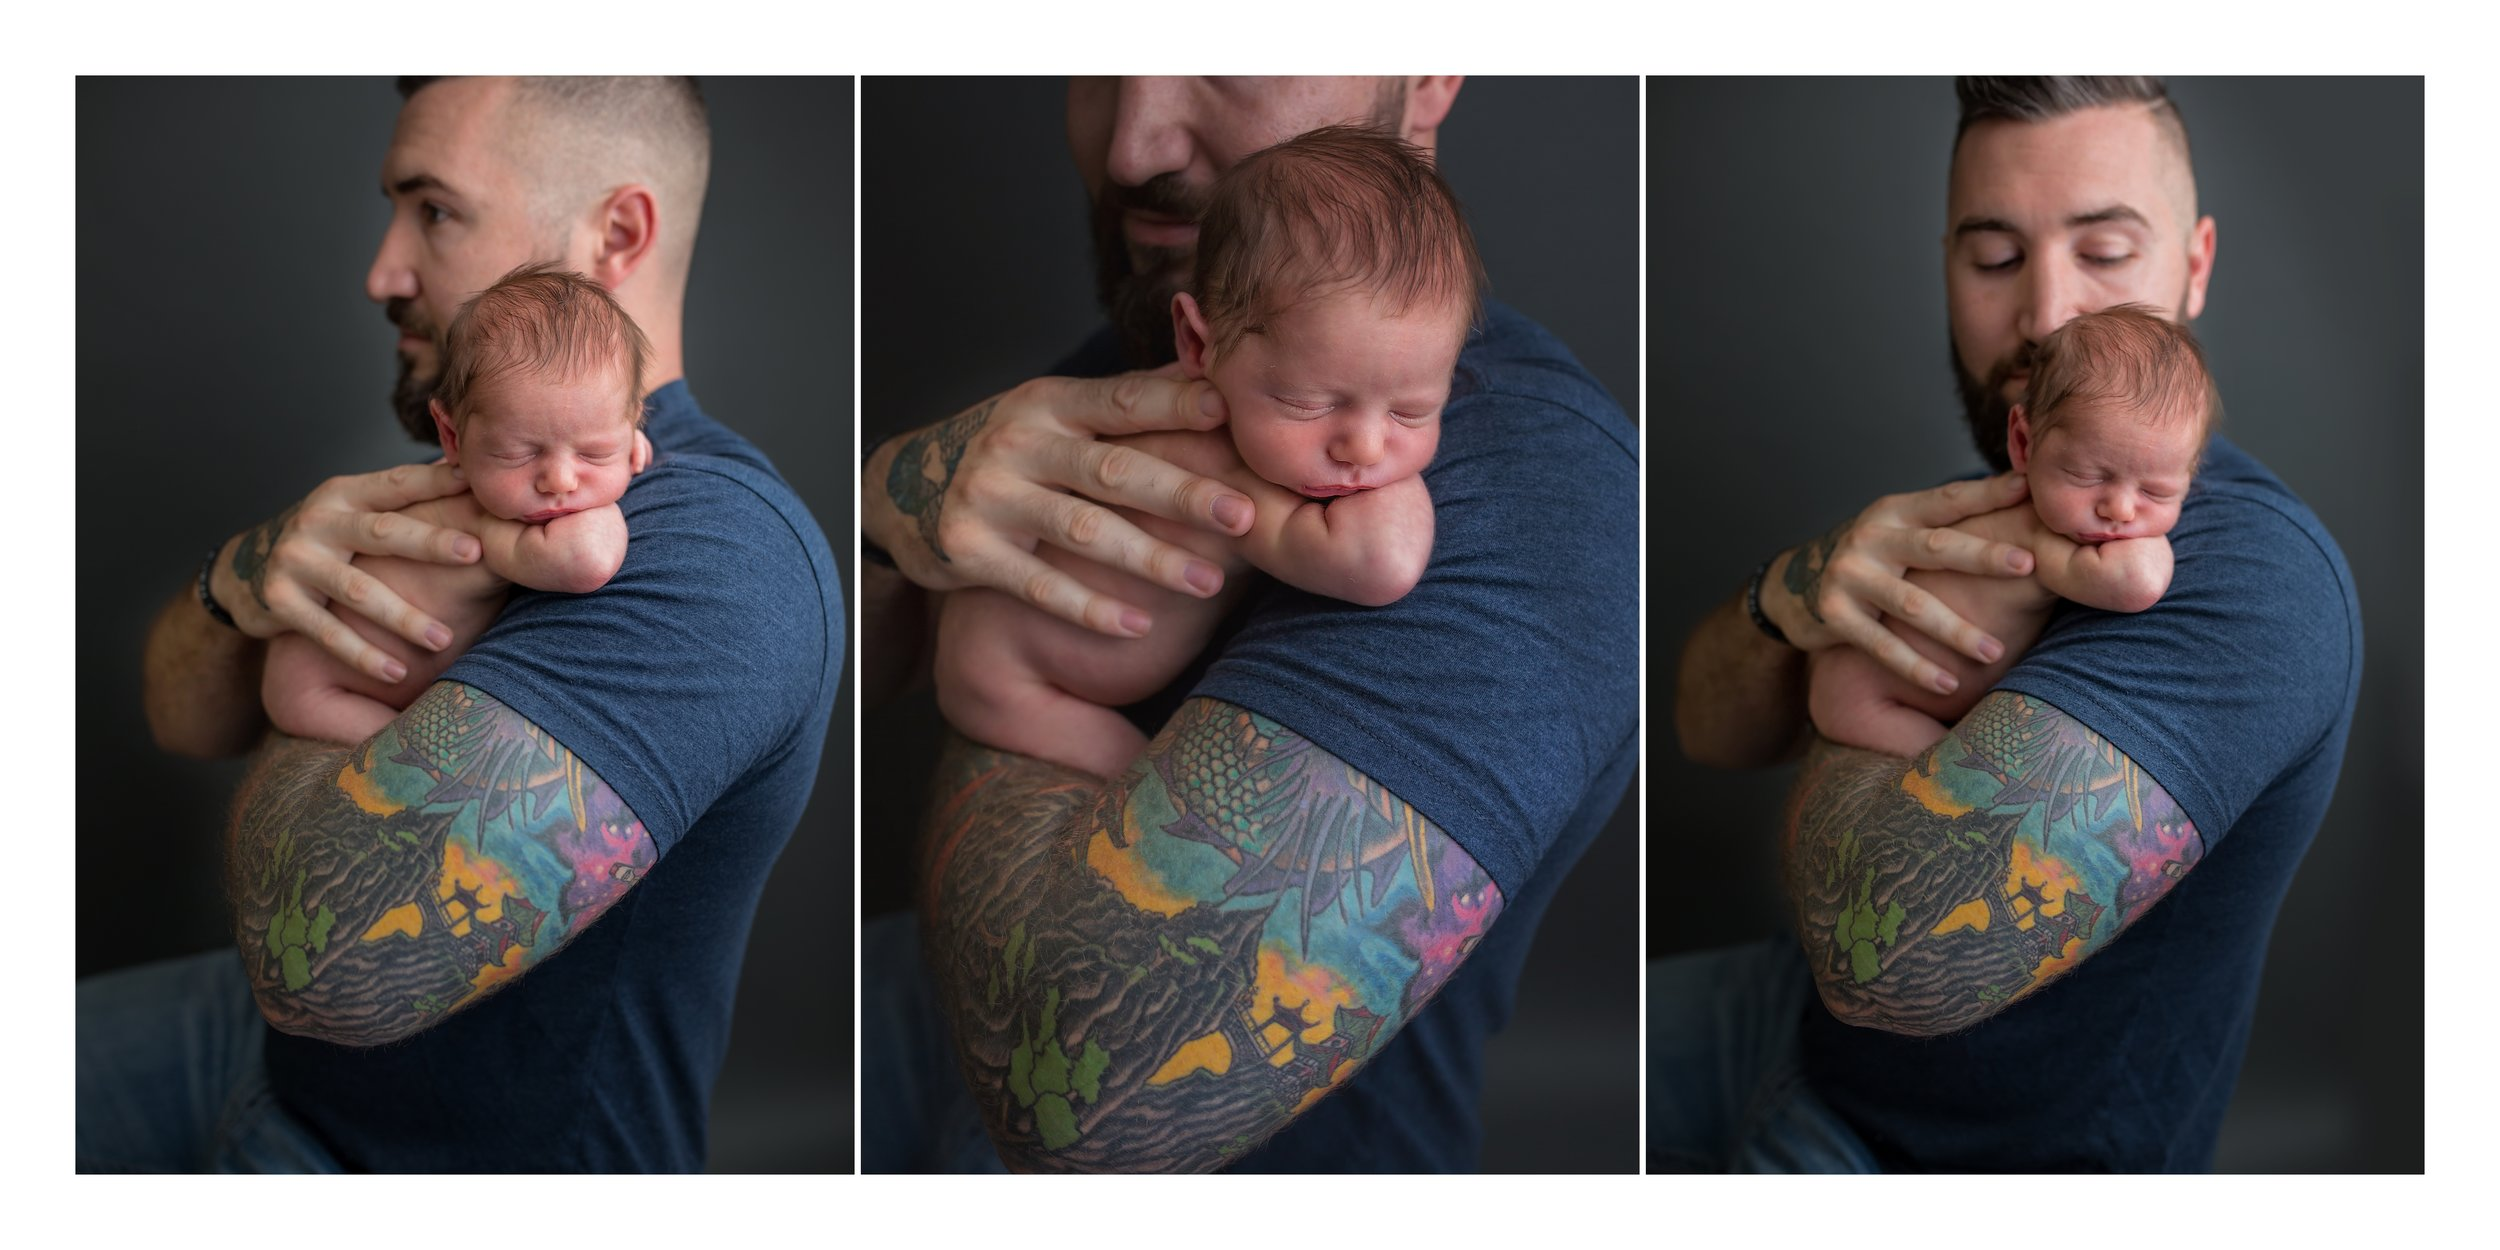 Dad with tattoos holds newborn baby during photo session